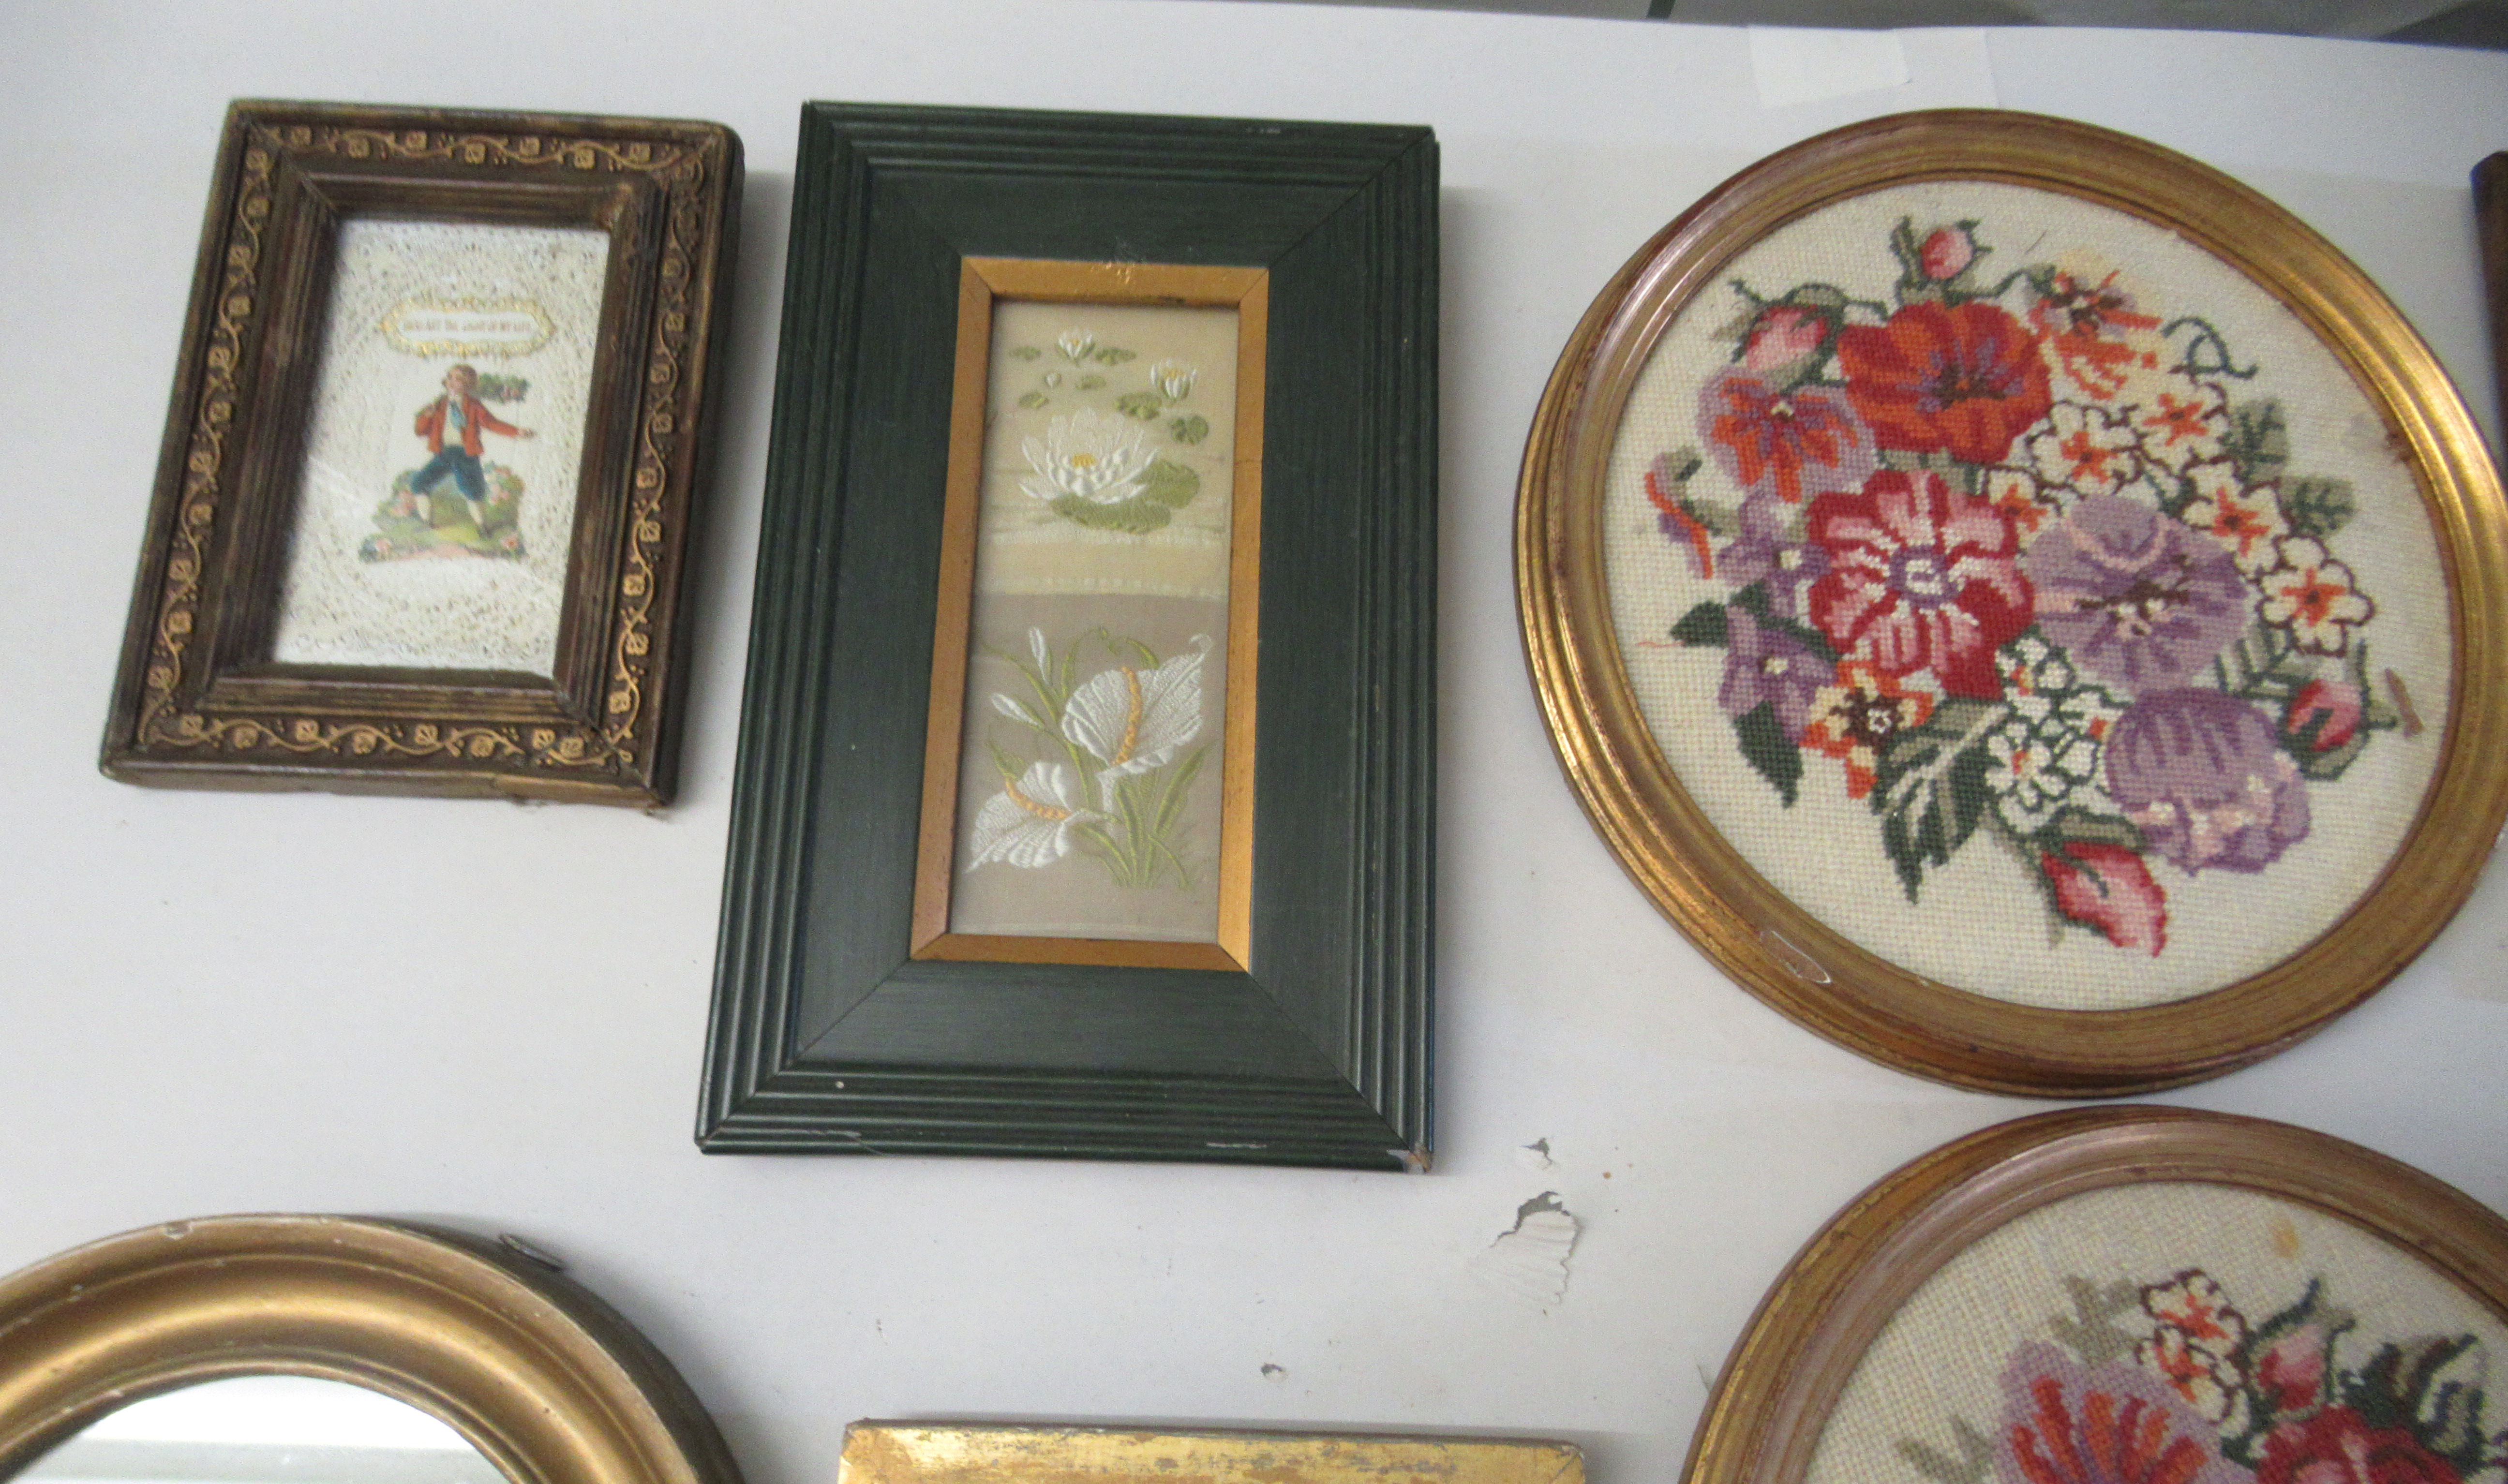 19th and 20thC embroidered tapestry panels various designs & sizes framed - Image 4 of 7